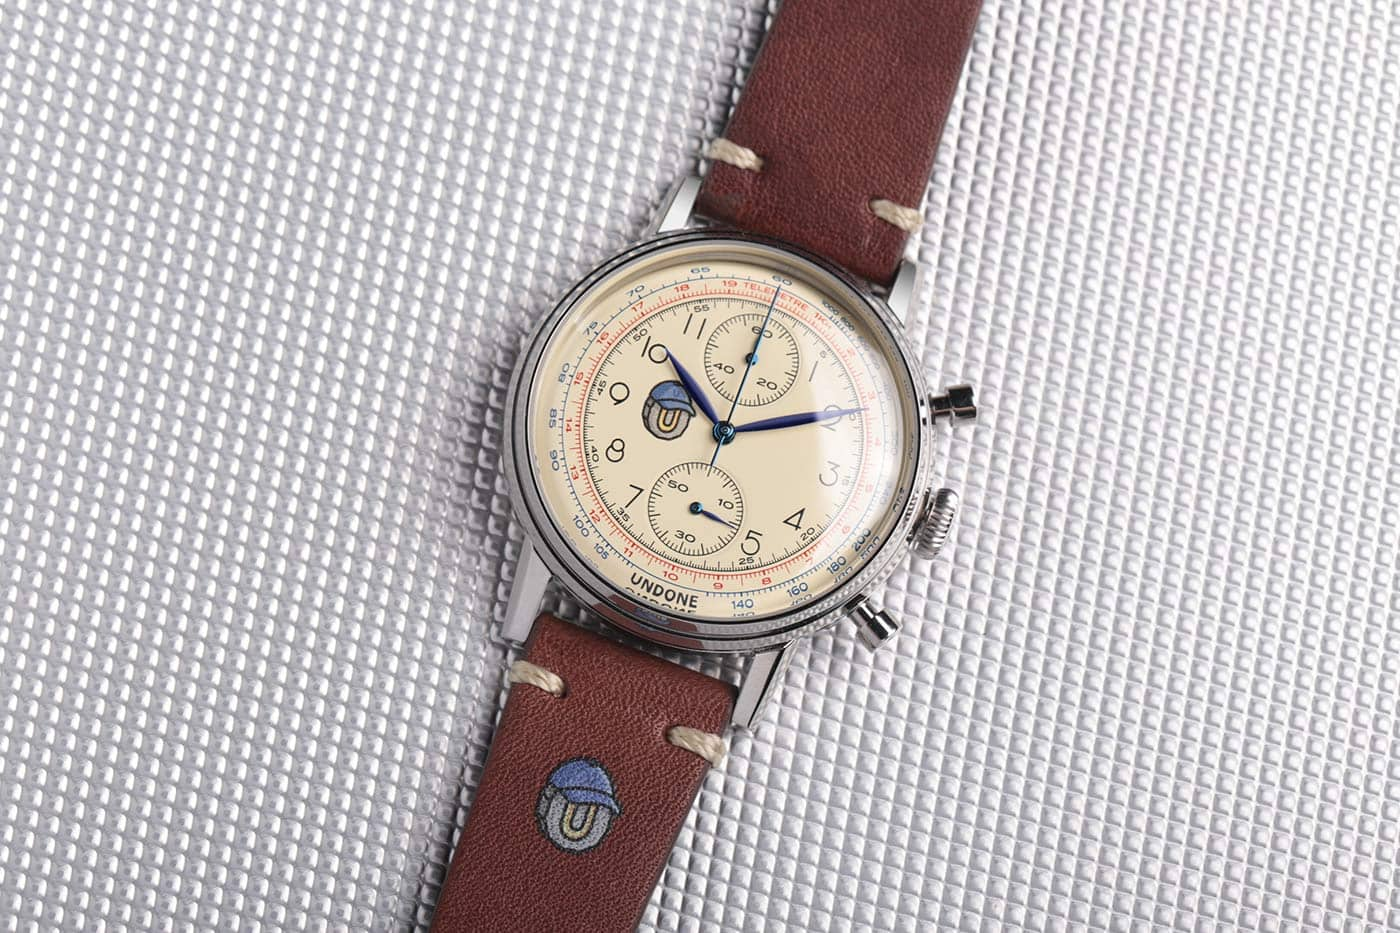 A brief Analysis of Antique Watches to the Present Day Urban Men's Watches